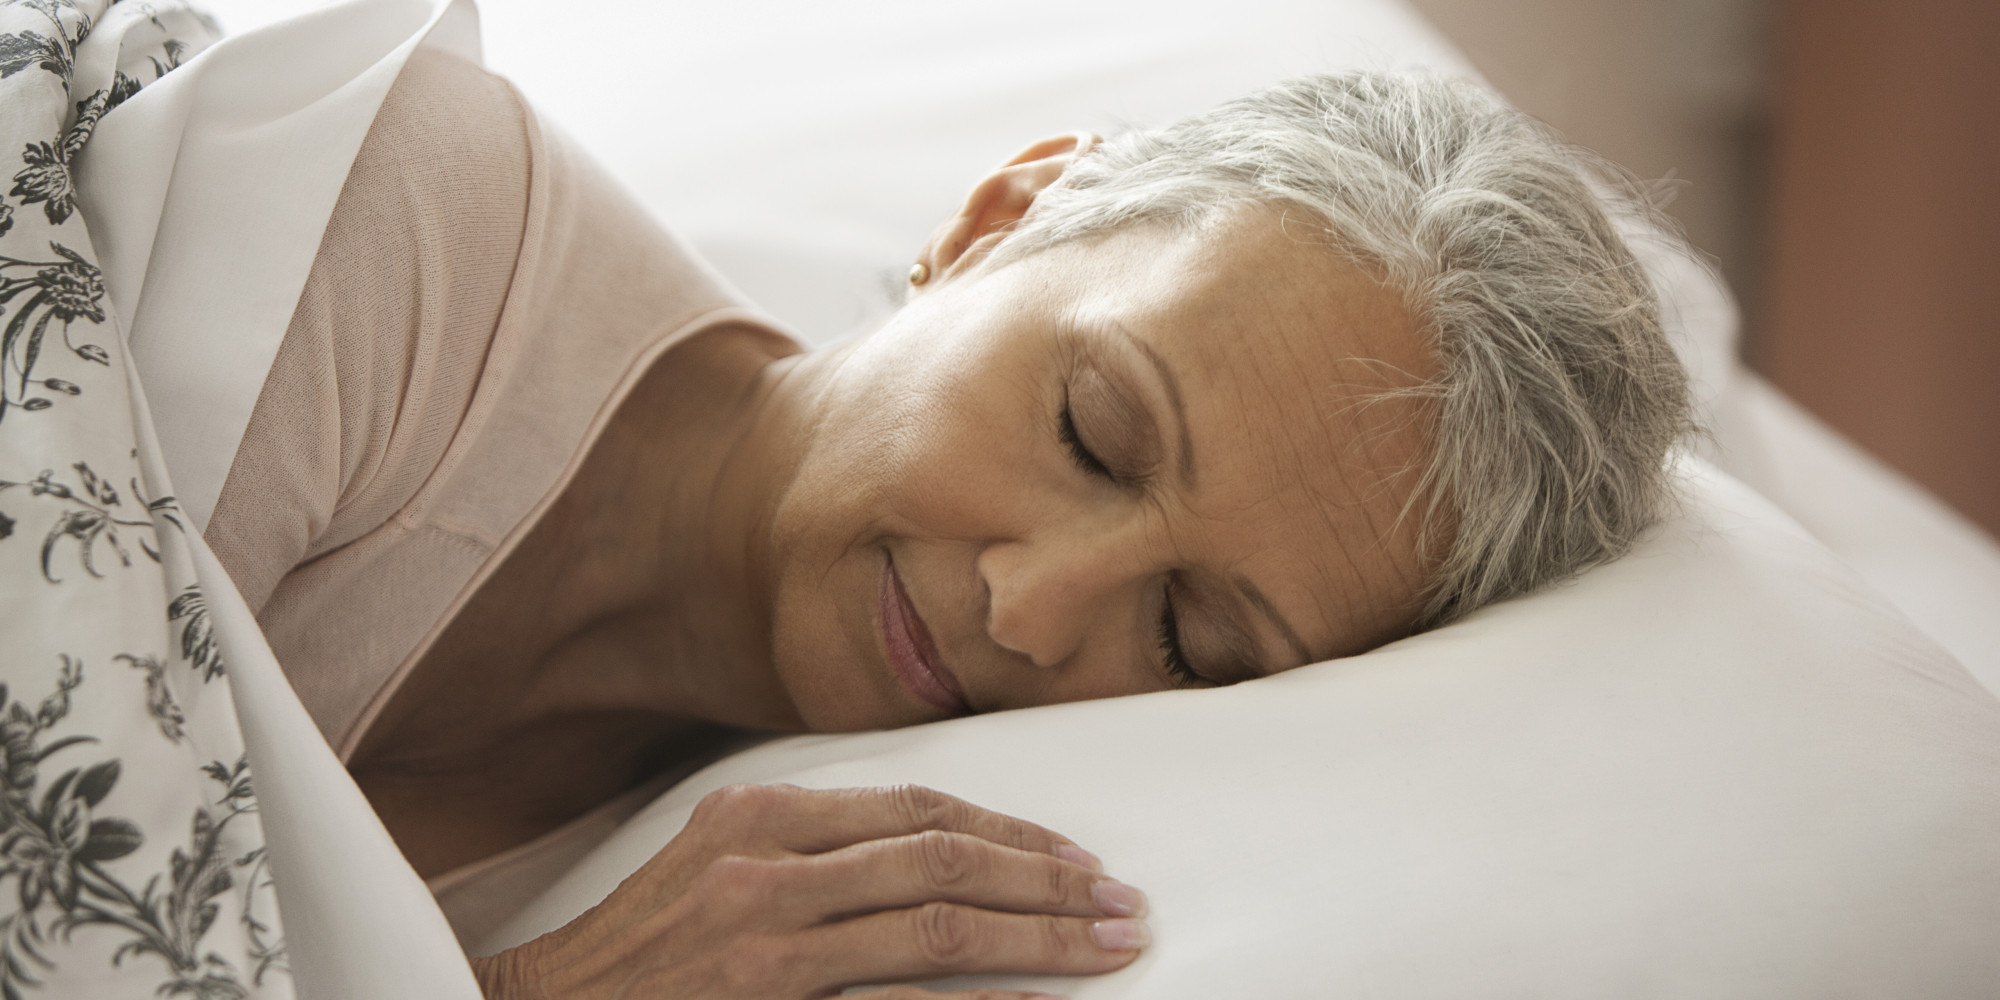 Sleep And Diet Affect Men And Women Differently, Study